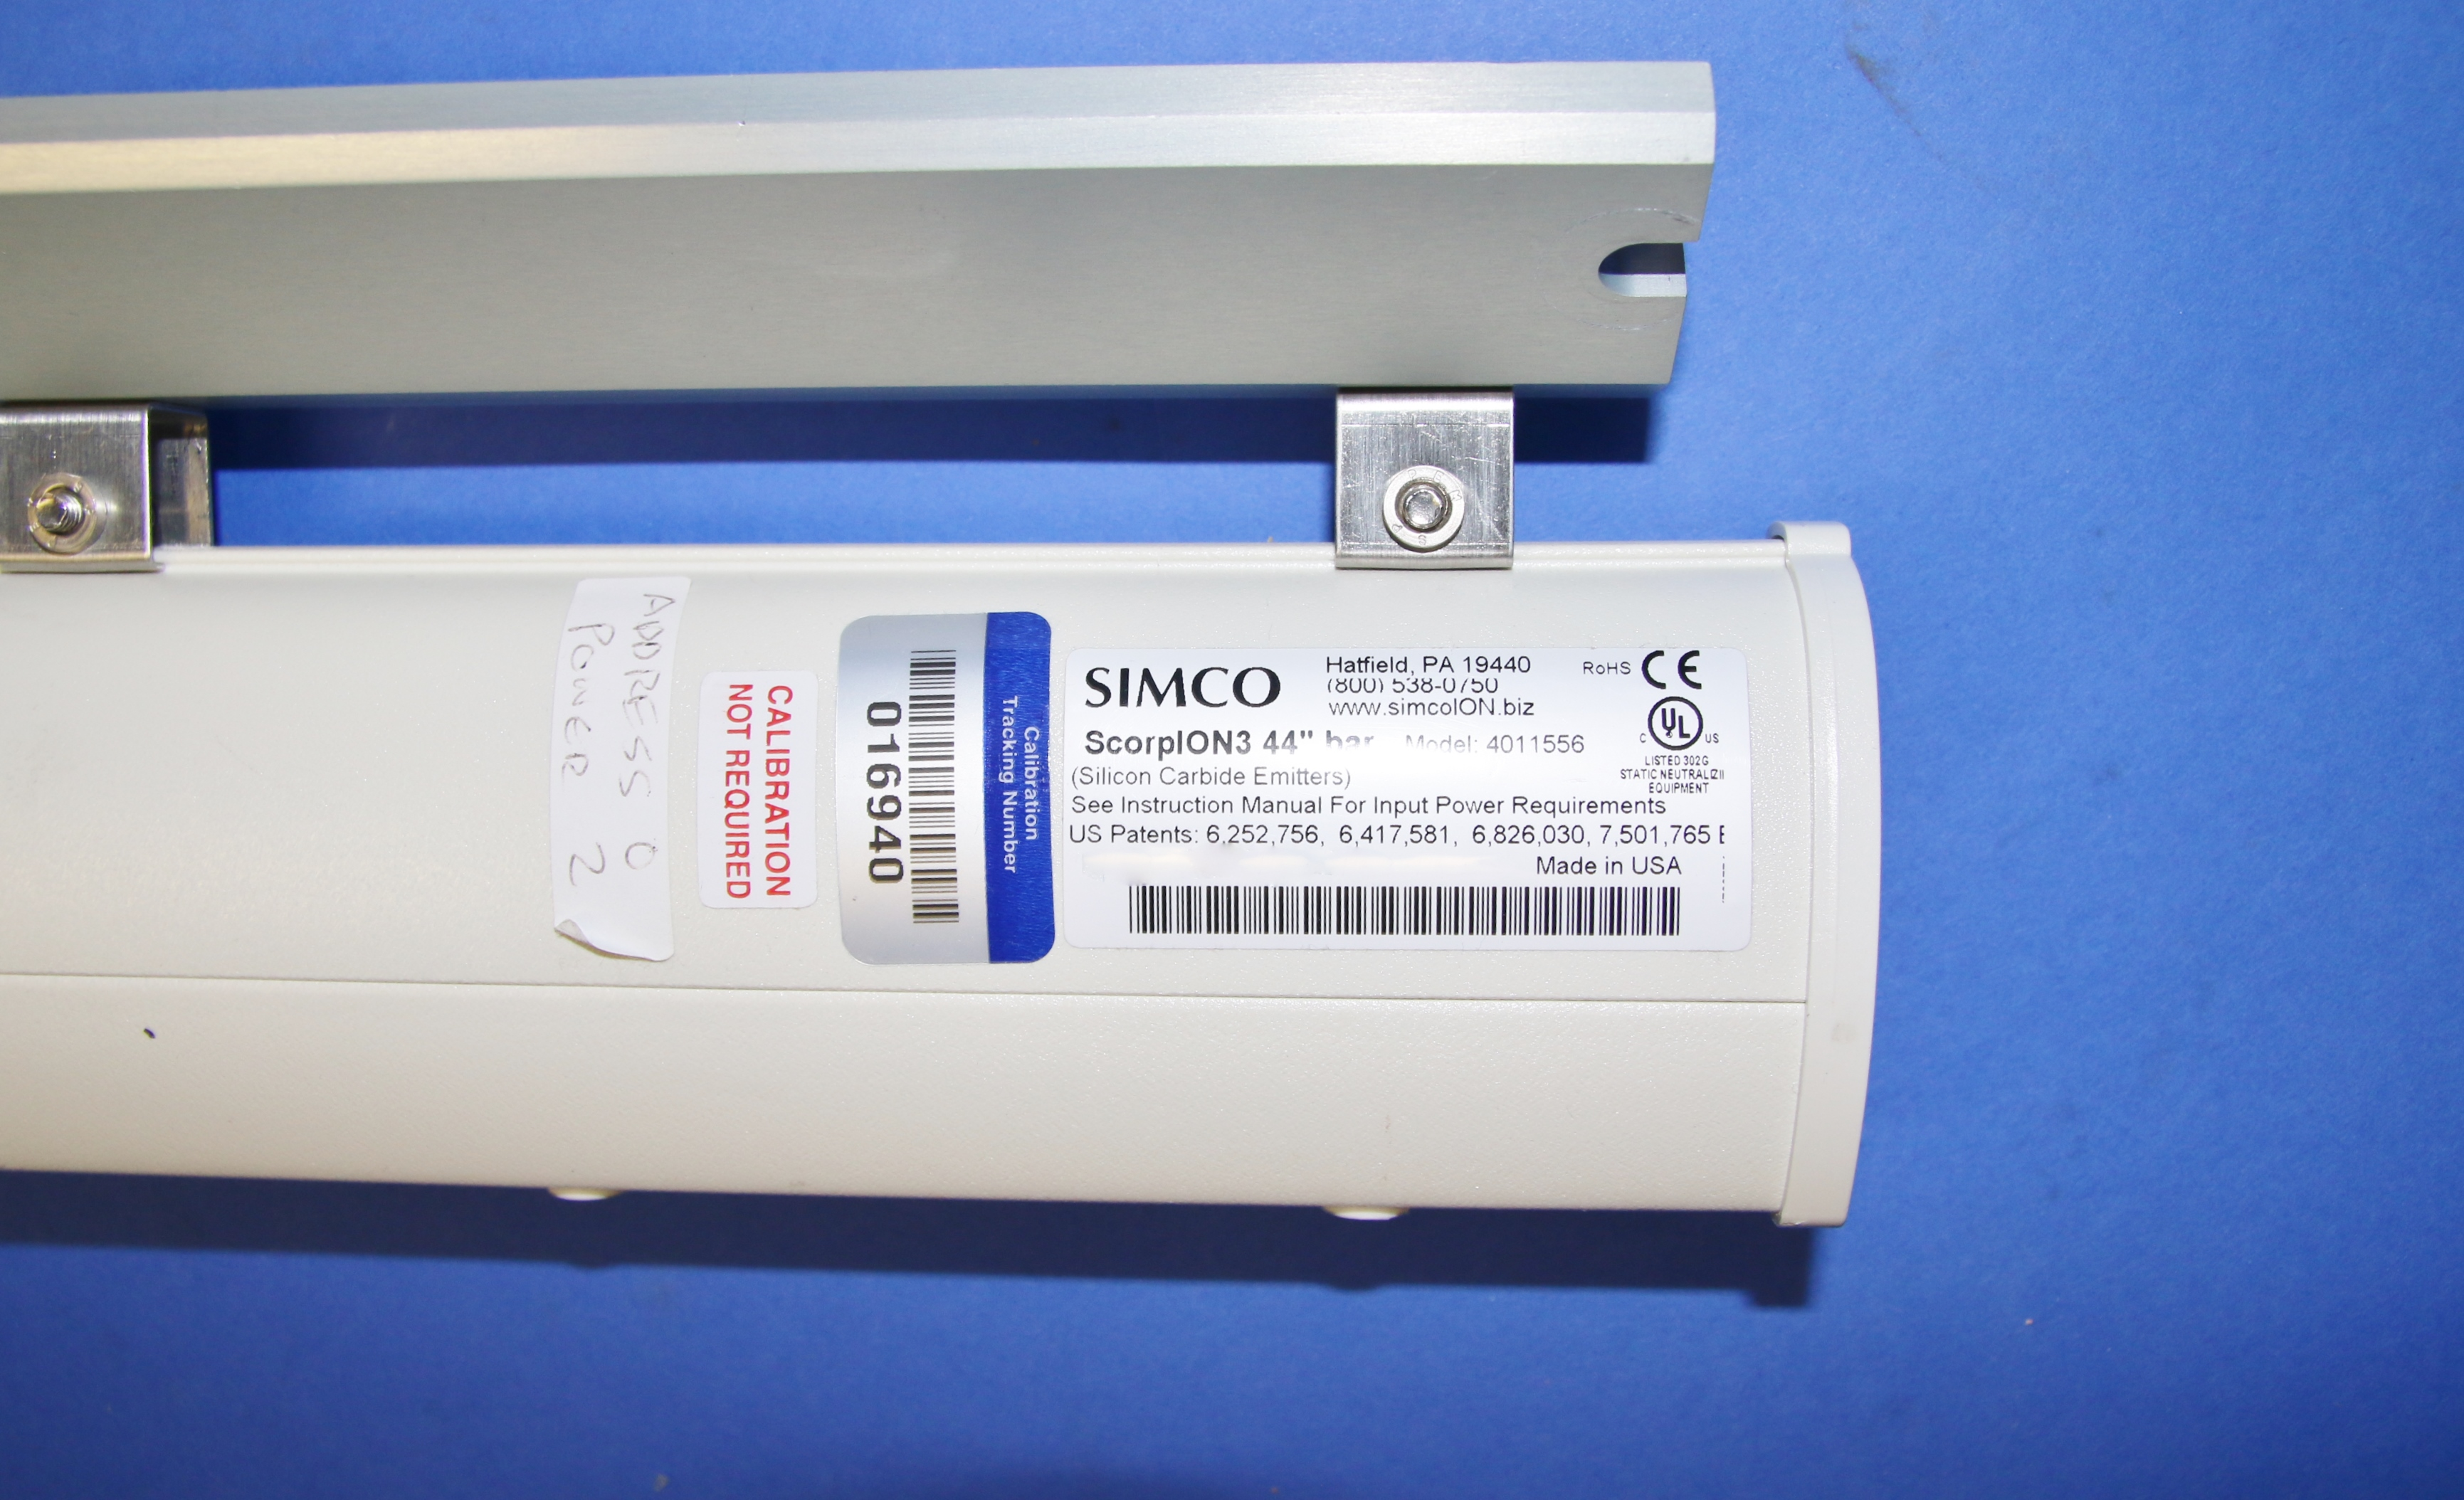 (1) Used Simco 4011556 ScorpION3 44″ Ionizing Bar 15873